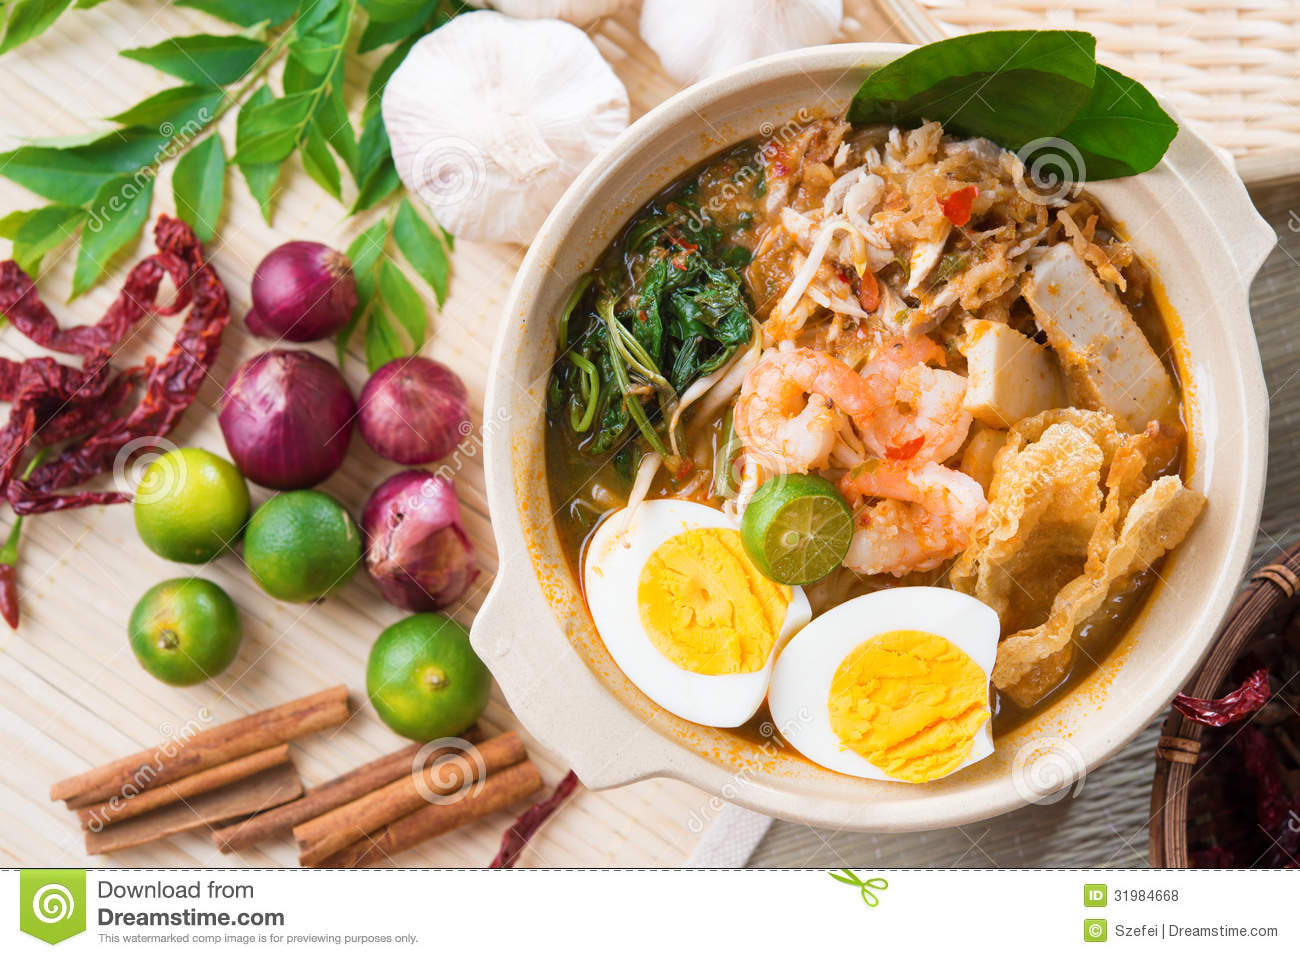 Singapore prawn noodles royalty free stock photos image for Asian cuisine singapore